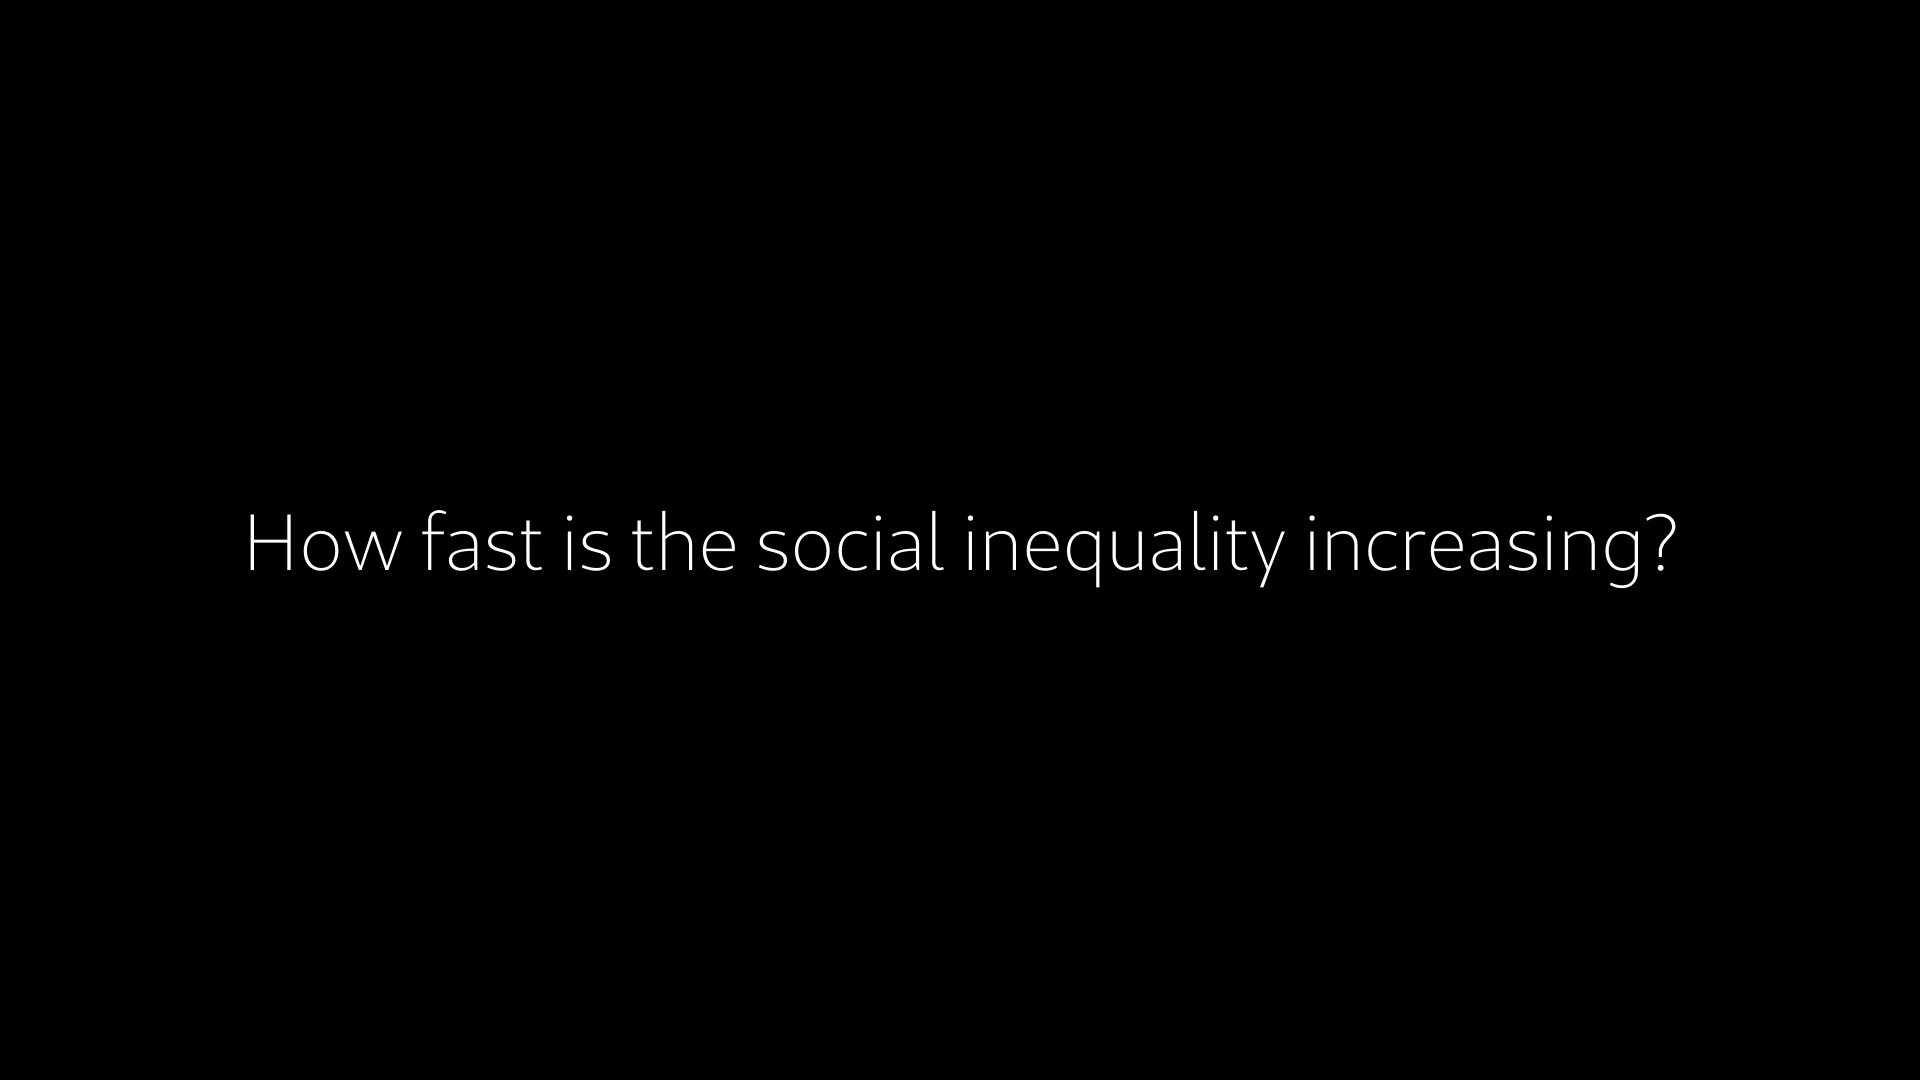 09. How fast is the inequality increasing?